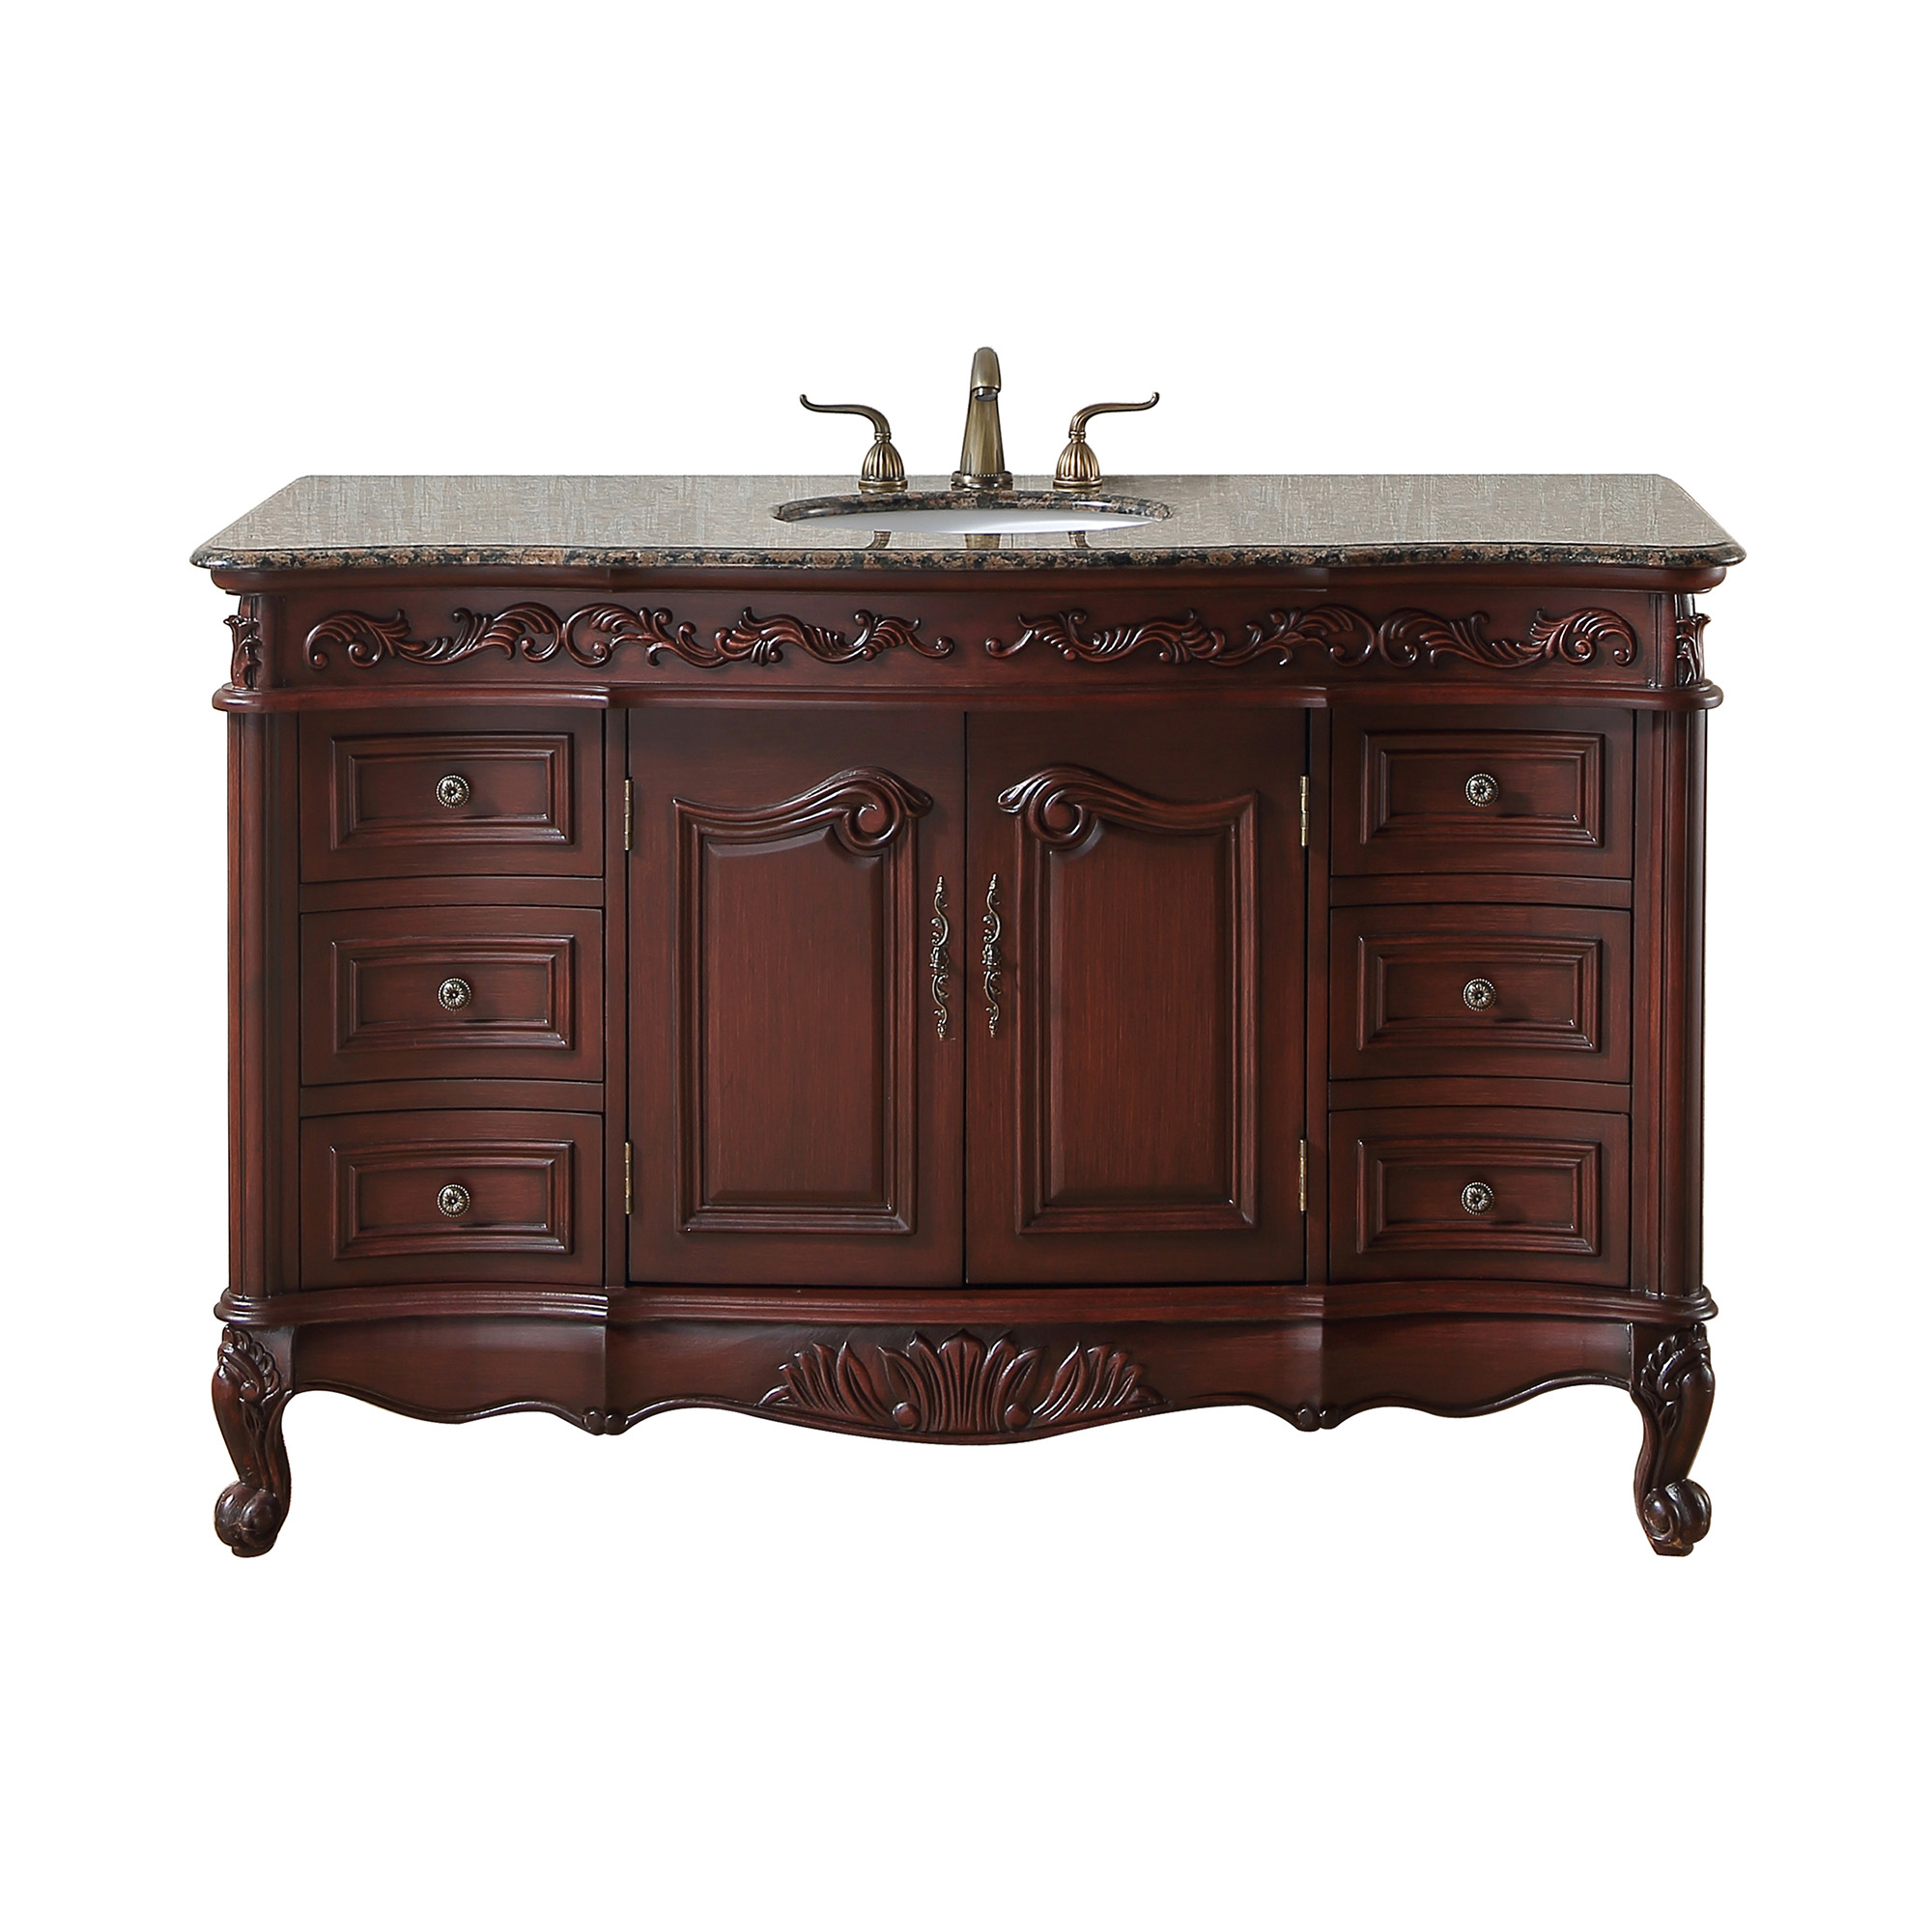 56 inch Princeton Single Sink Bathroom Vanity - Baltic Brown